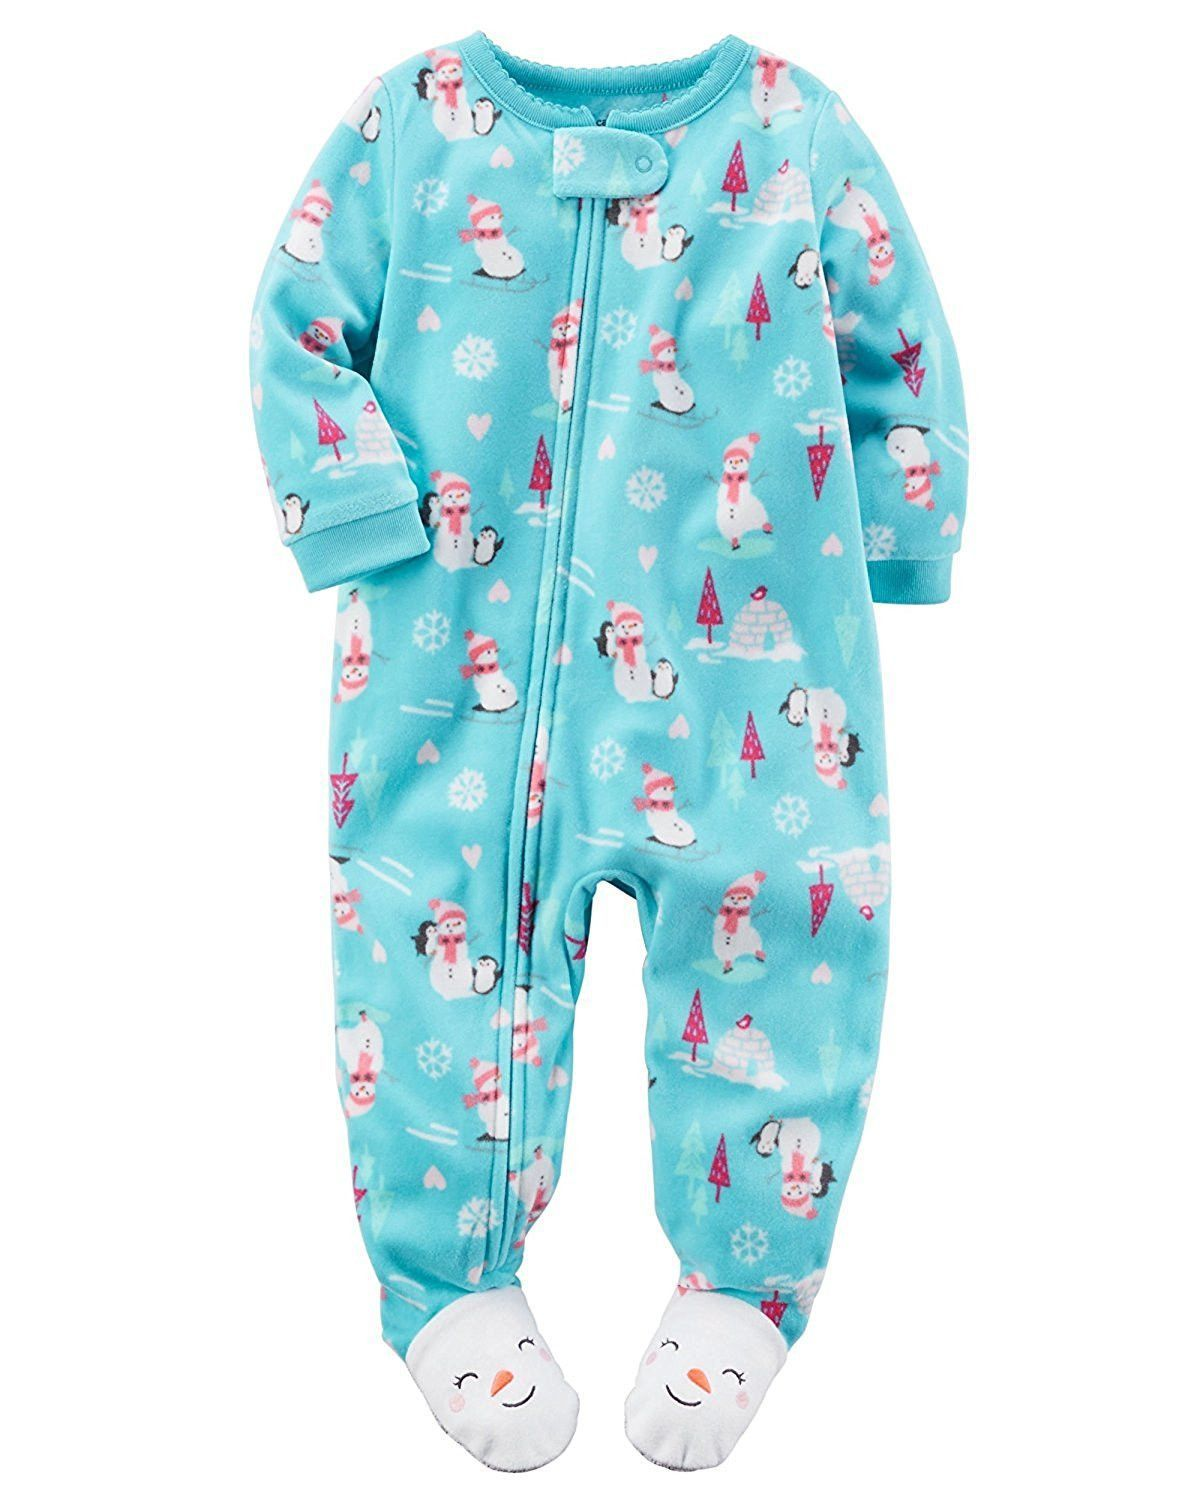 5571dda8e Carters Baby Girls Size  24 Months 1-Piece Footed Fleece Pajamas ...